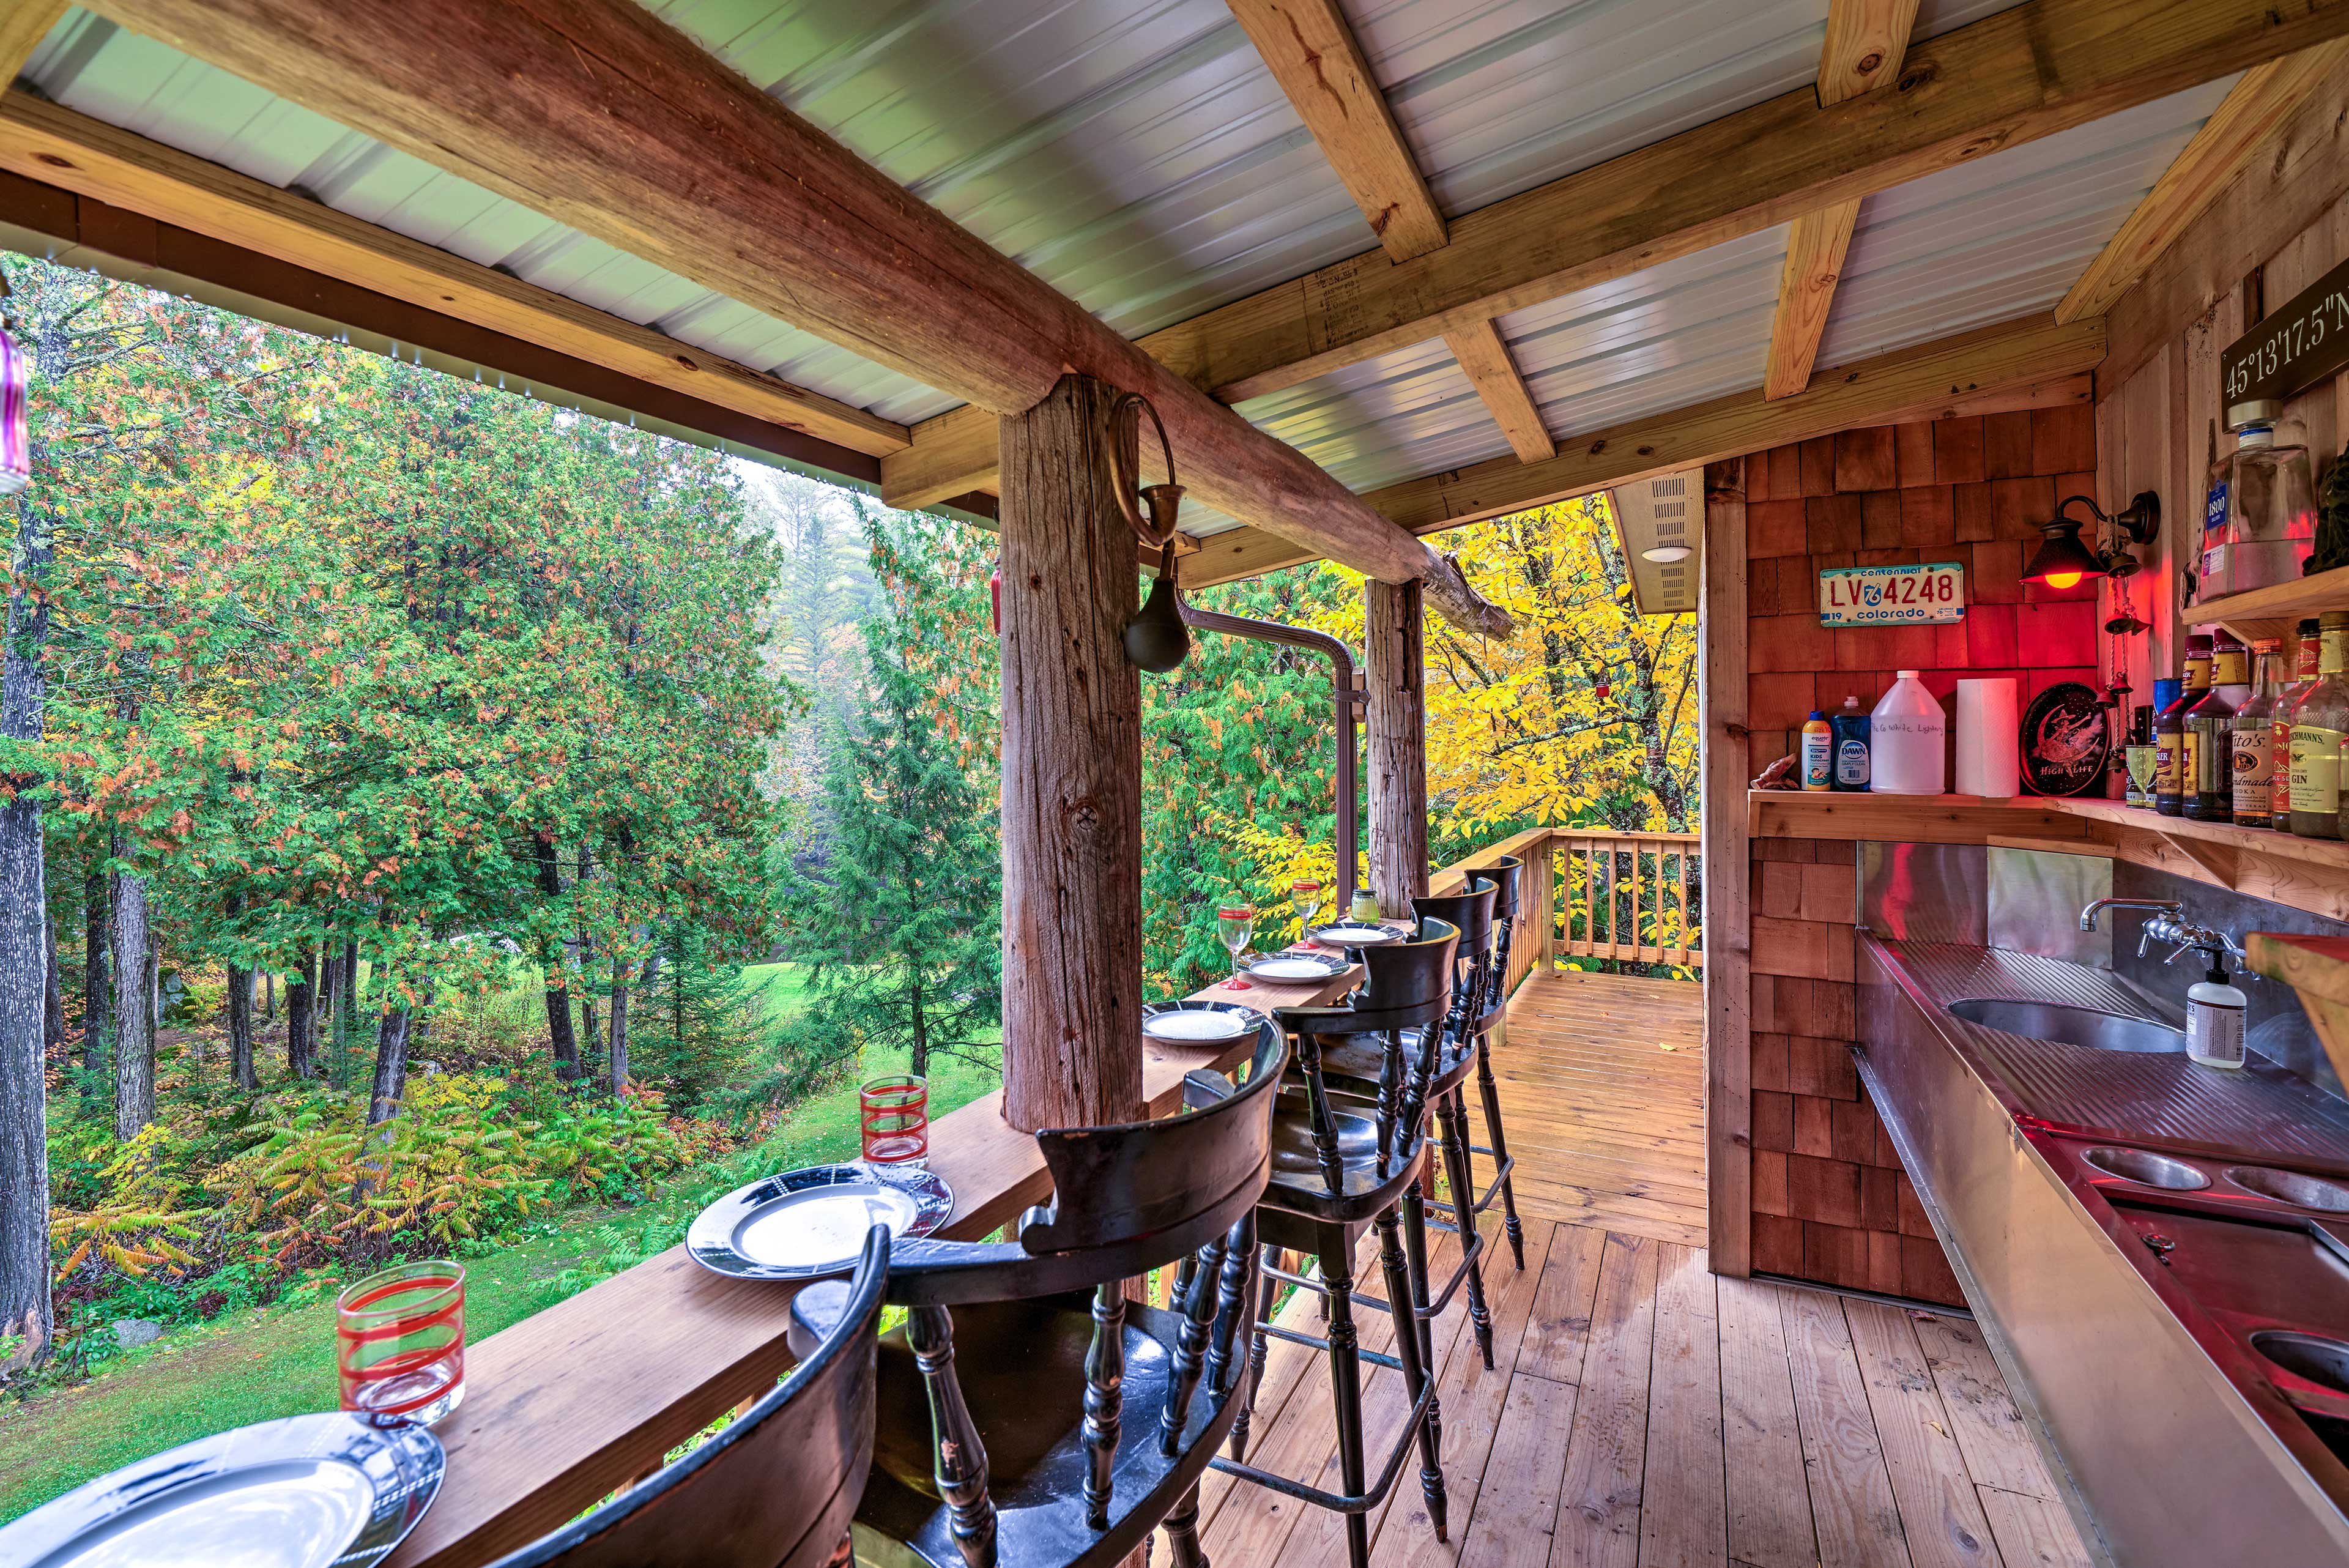 The 2-bedroom, 2-bathroom home sleeps 6 guests in a forest paradise.